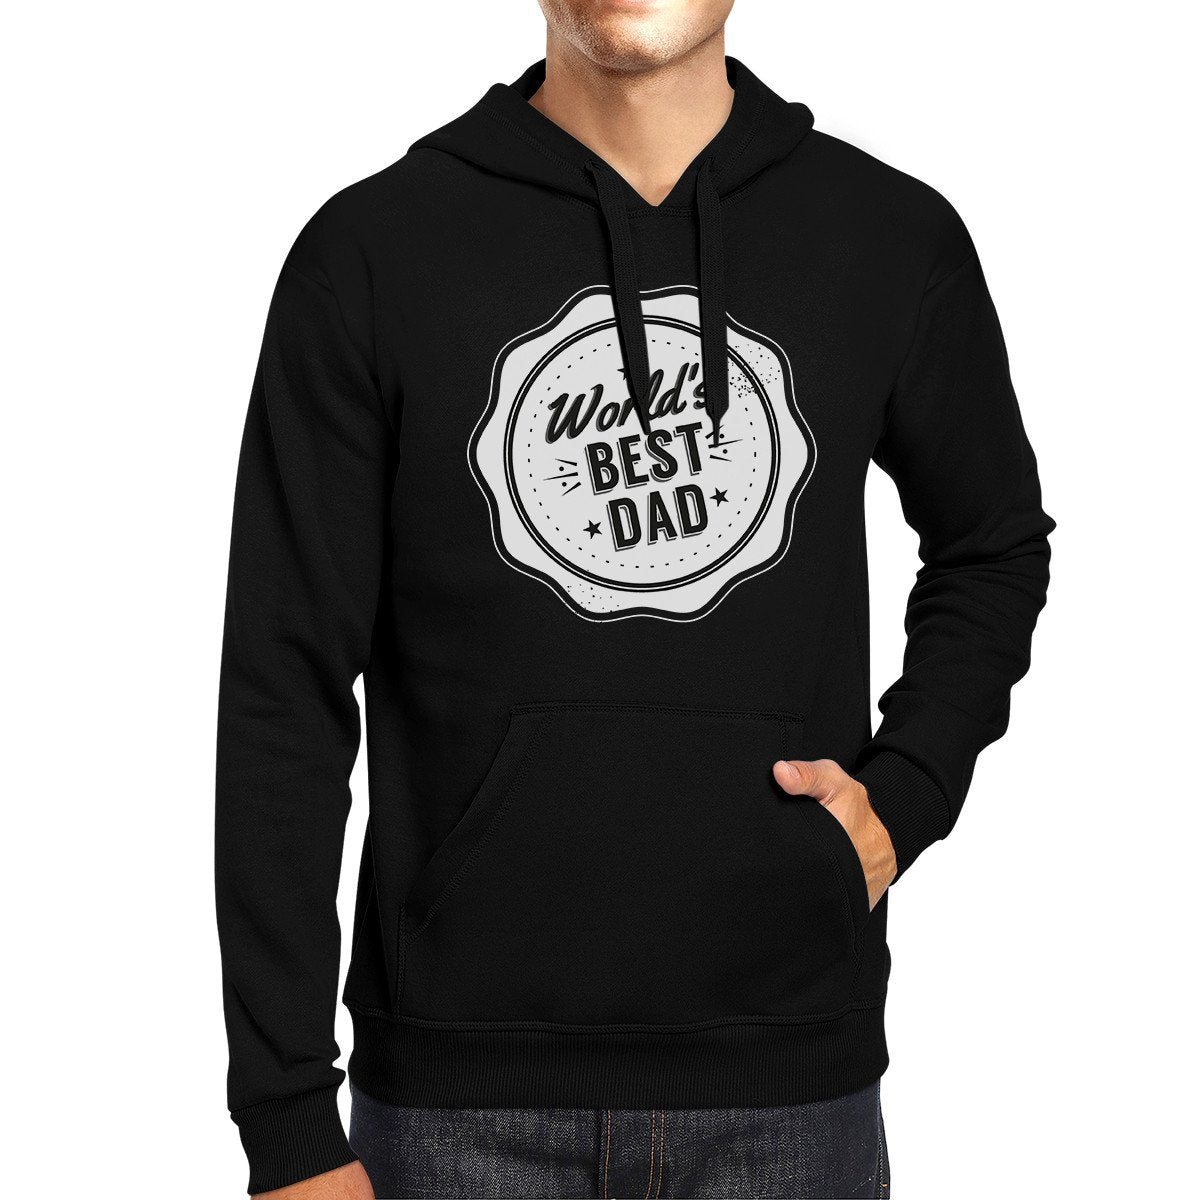 World's Best Dad Black Hoodie Cute